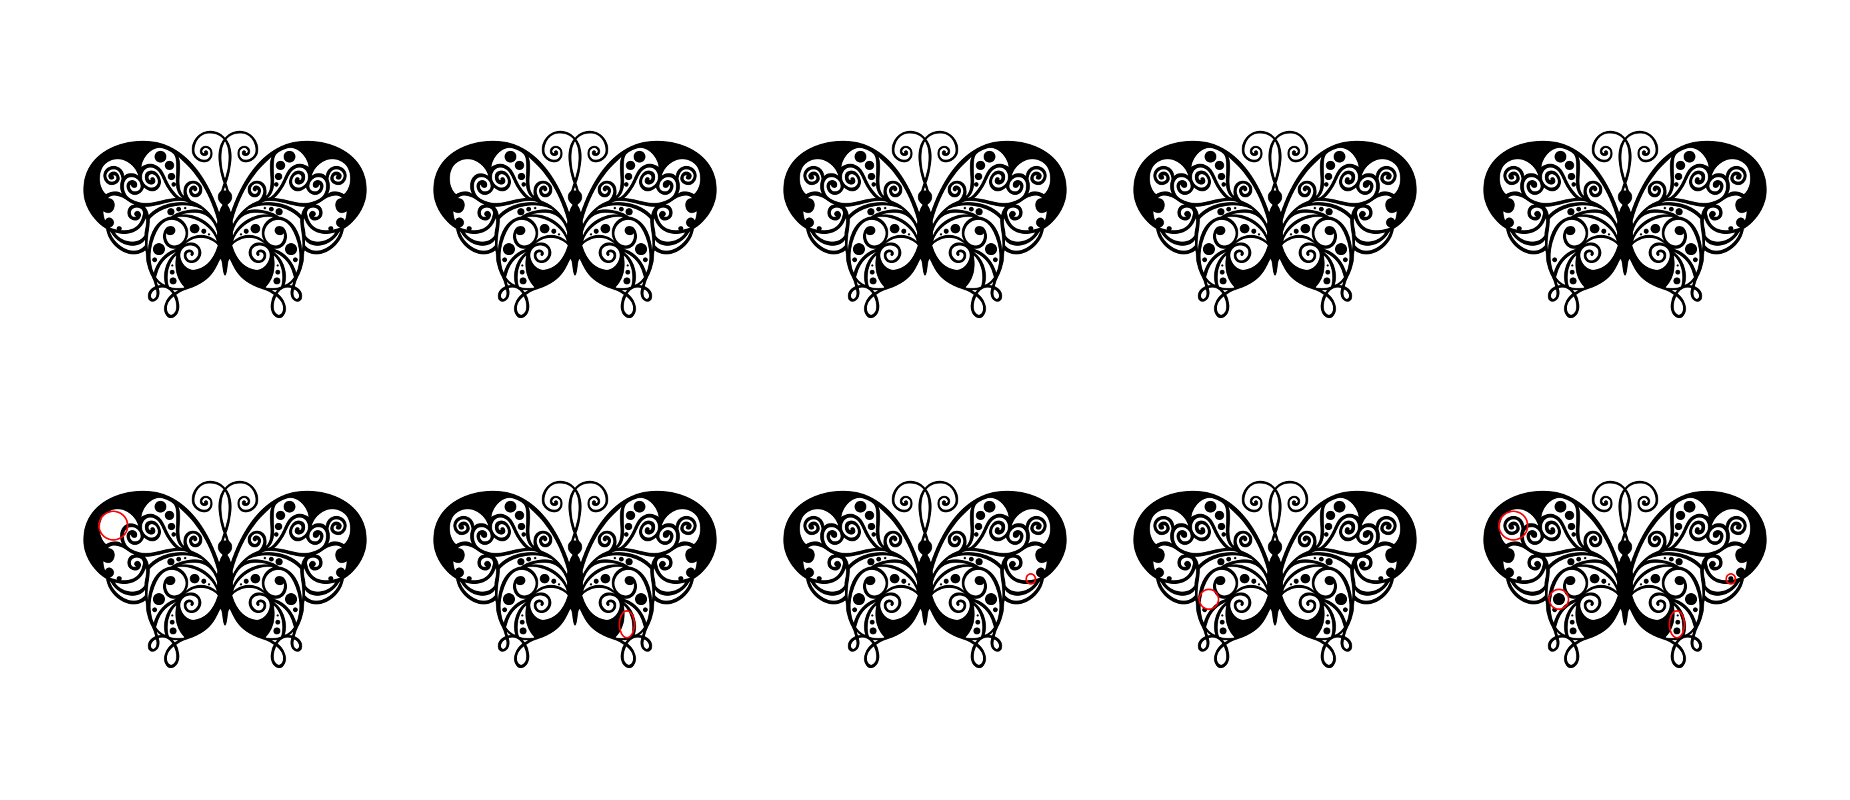 Zen PLR Beautiful Butterflies Journal Templates Upgrade Find the Differences Butterfly 02